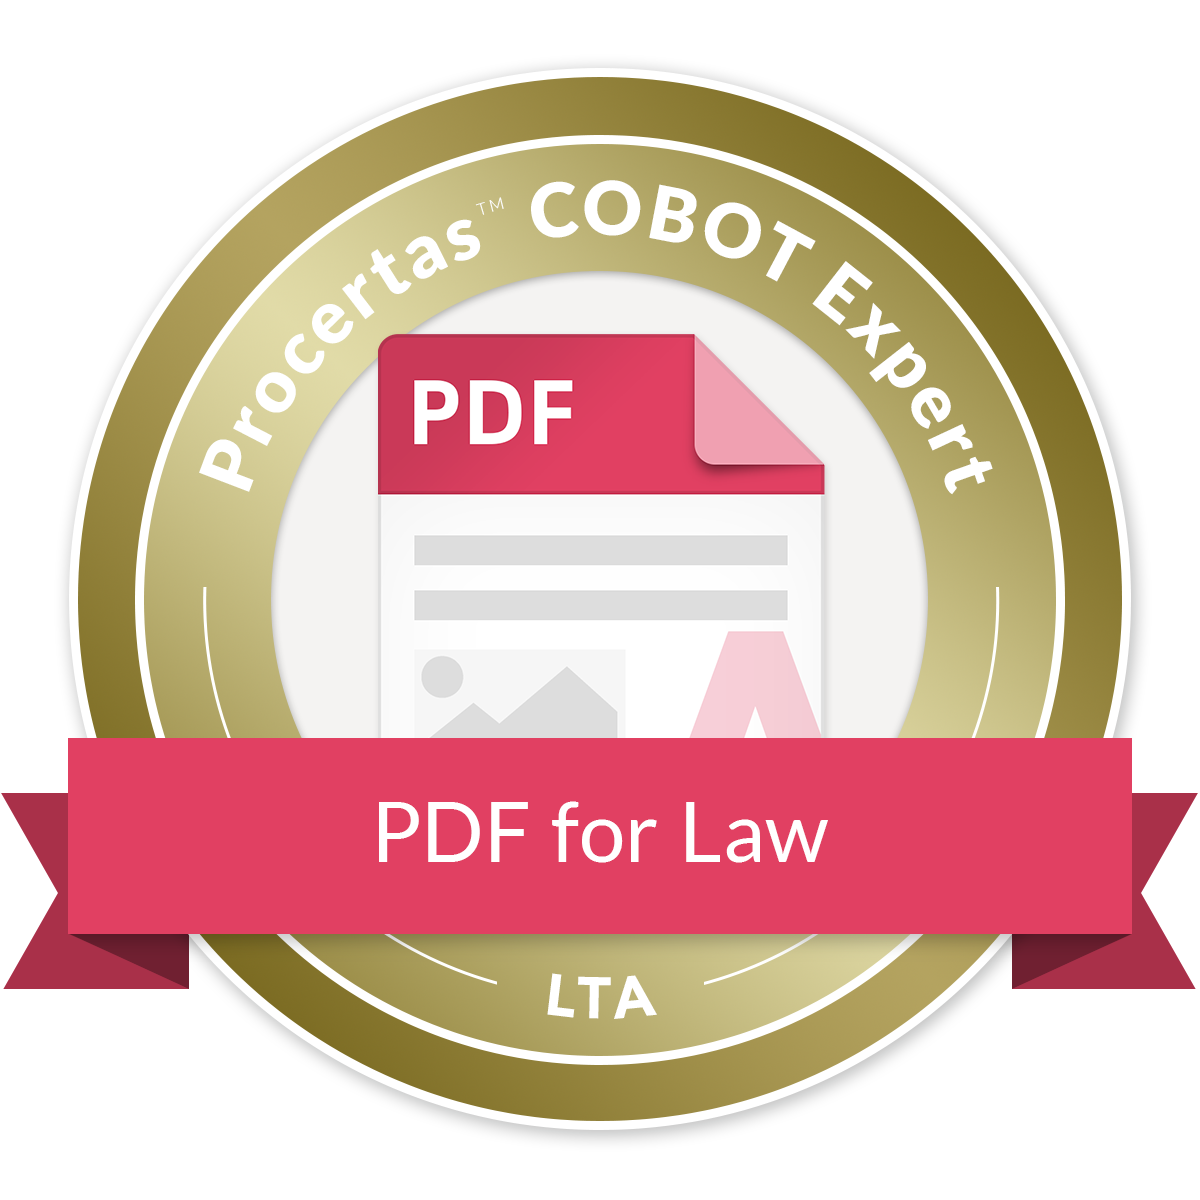 COBOT Expert - PDF for Law